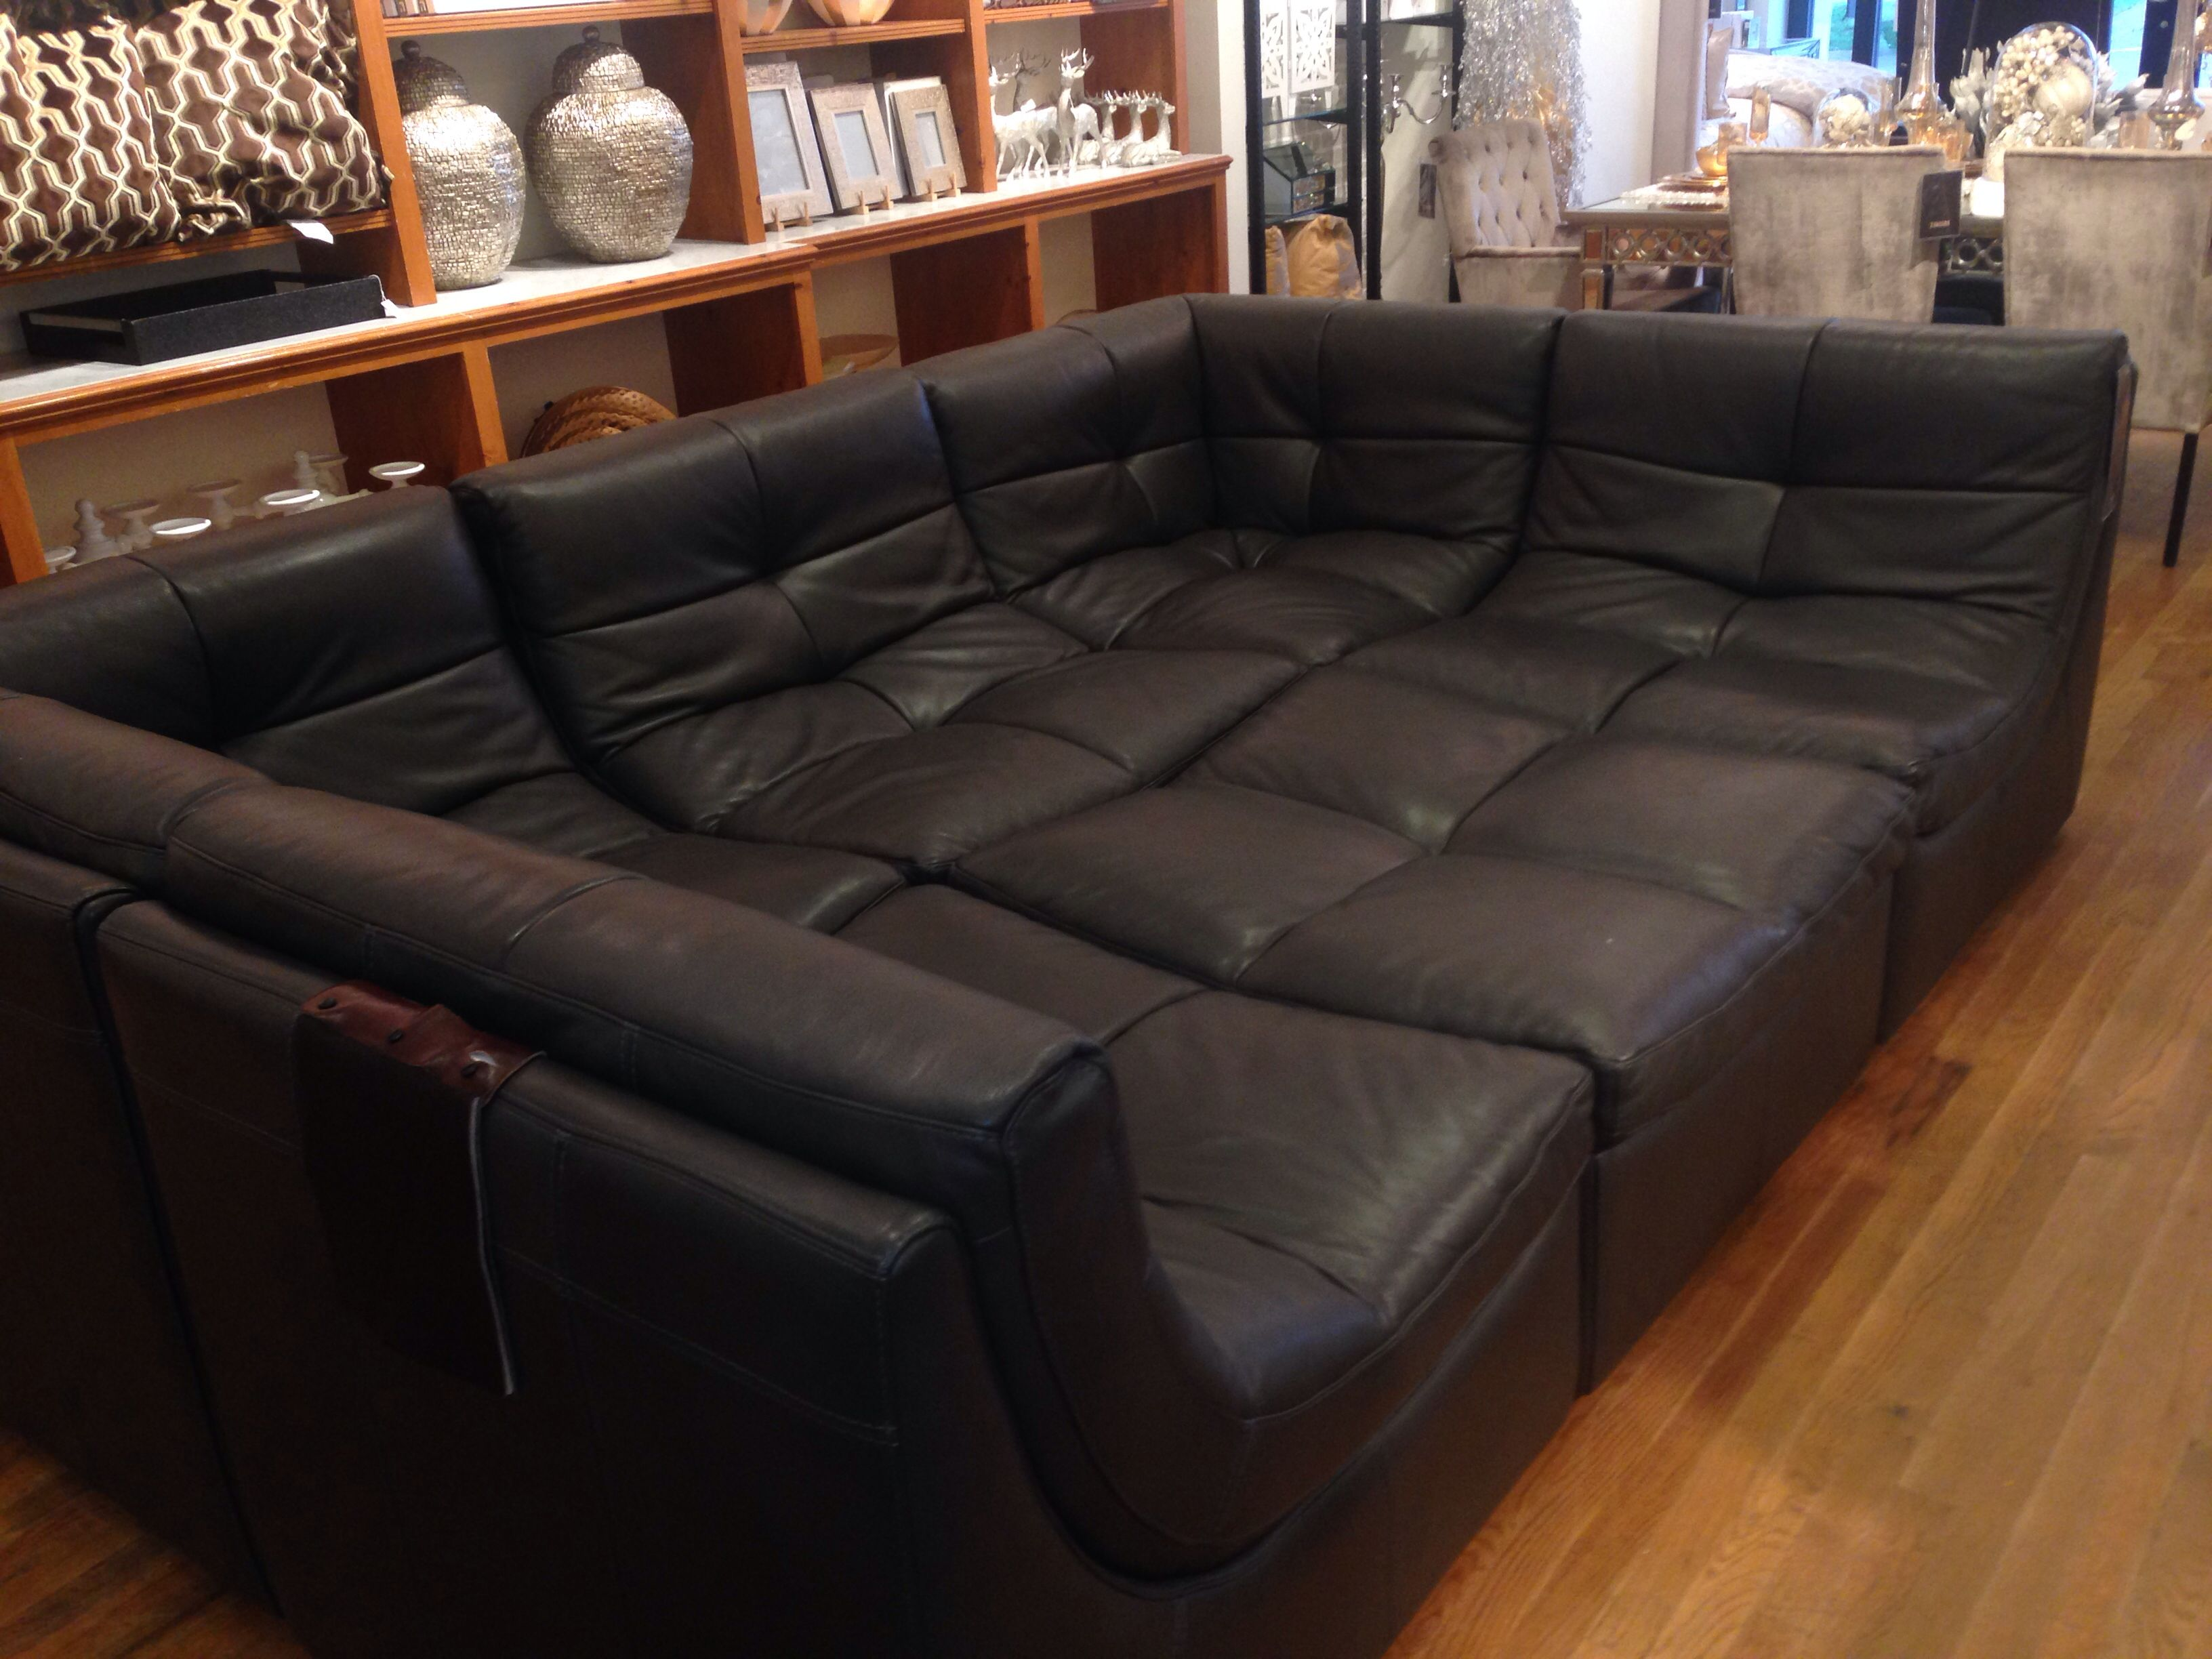 Large couch for my place pinterest movie rooms for Large sofa small room